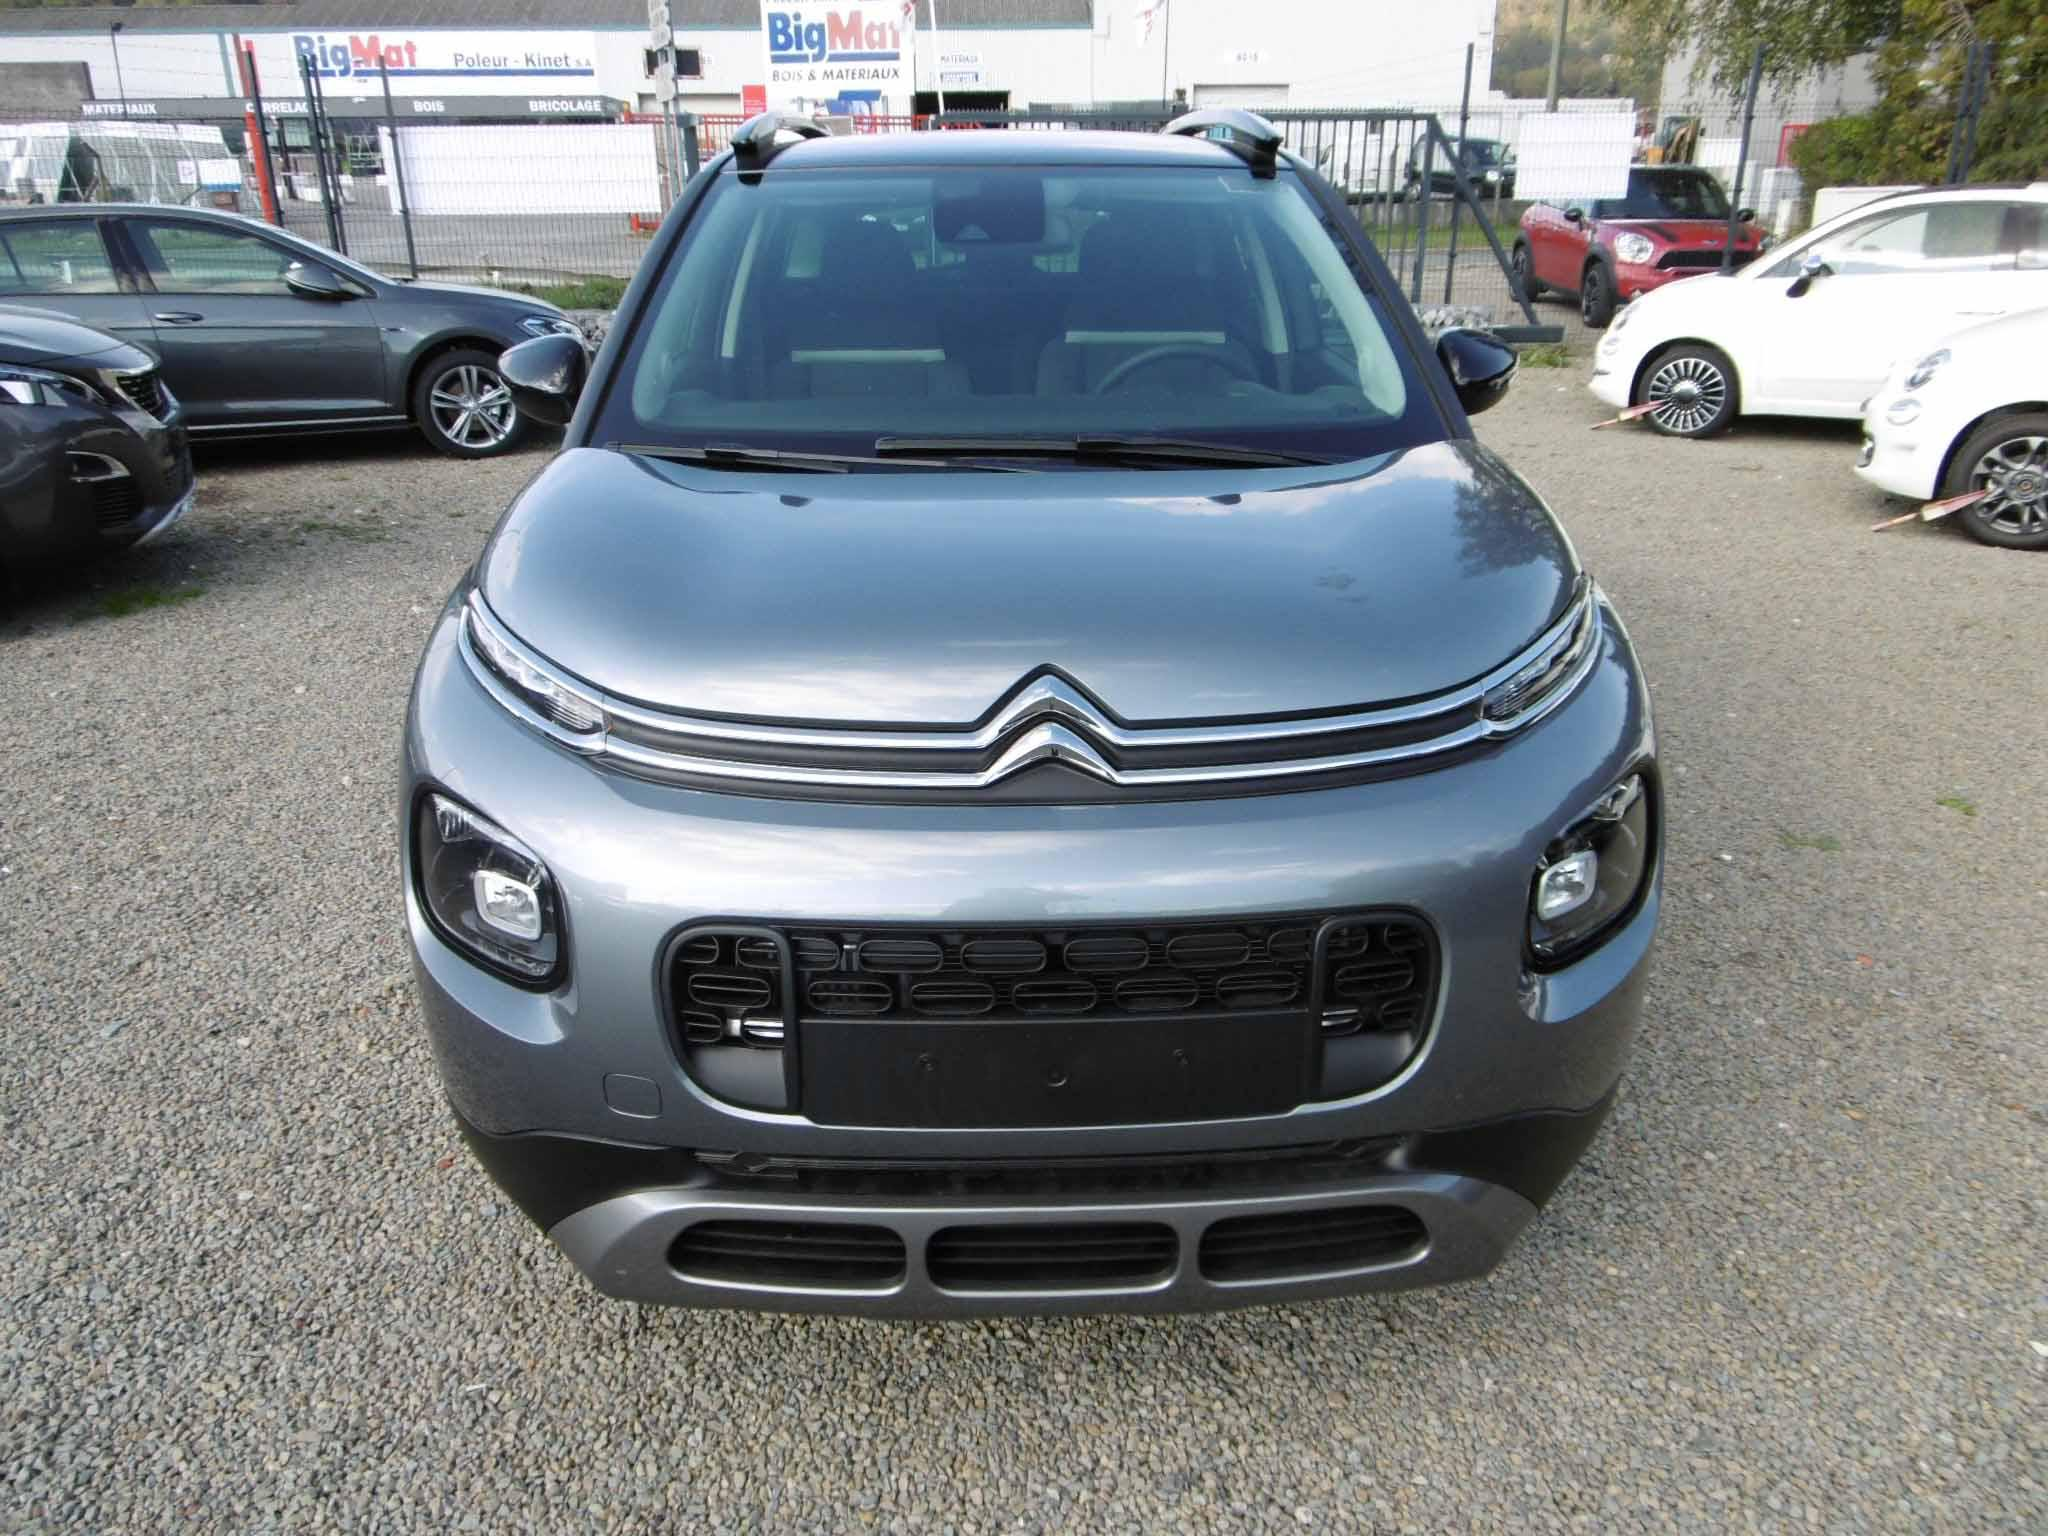 citroen c3 aircross 1 2 puretech 110 shine the car factory. Black Bedroom Furniture Sets. Home Design Ideas